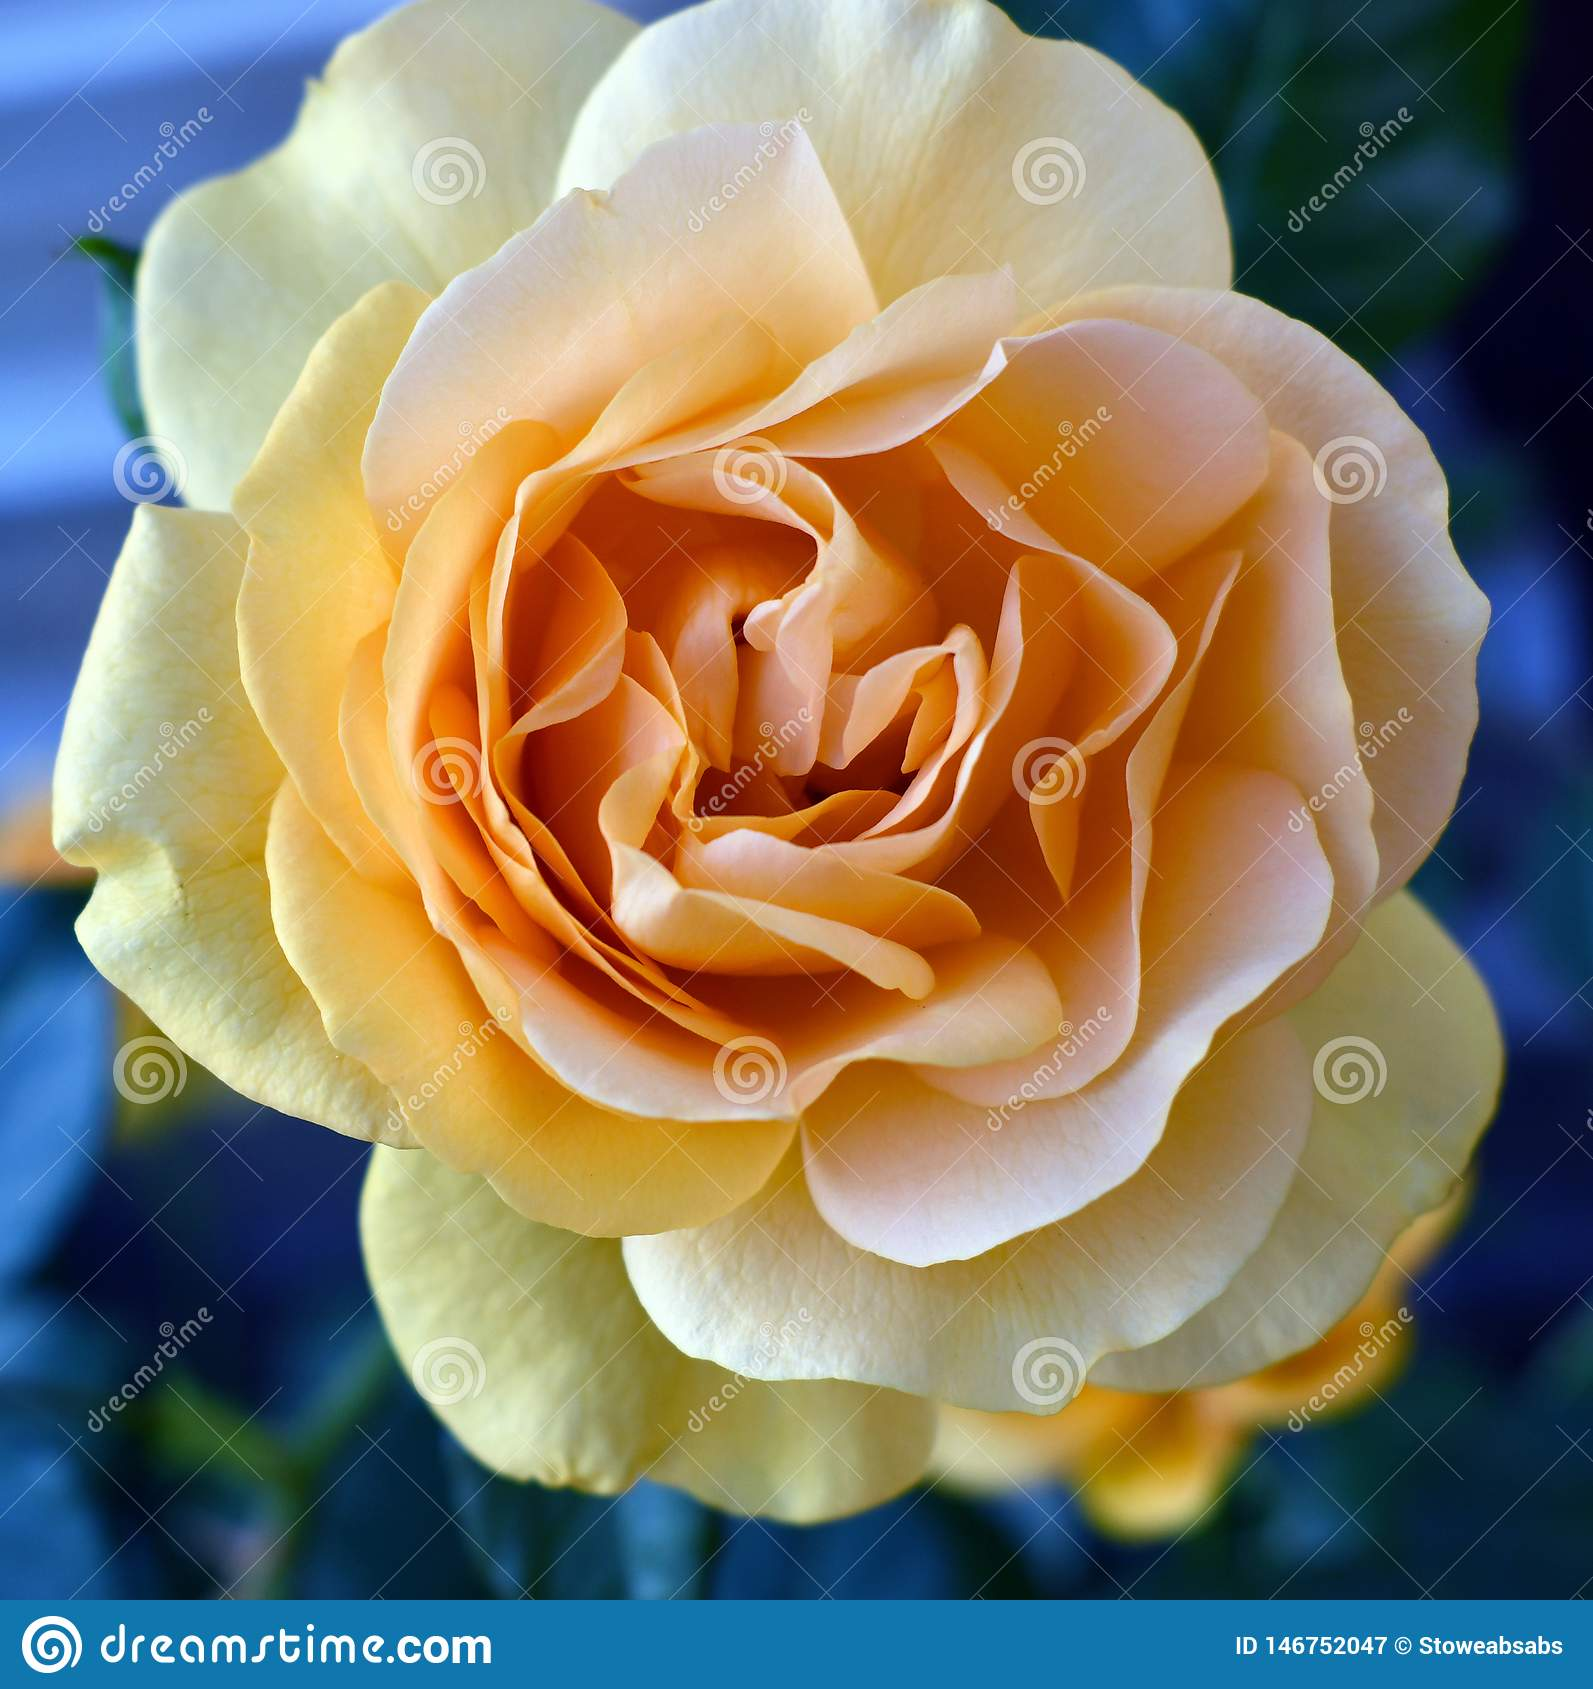 Yellow Roses yellow roses symbolize